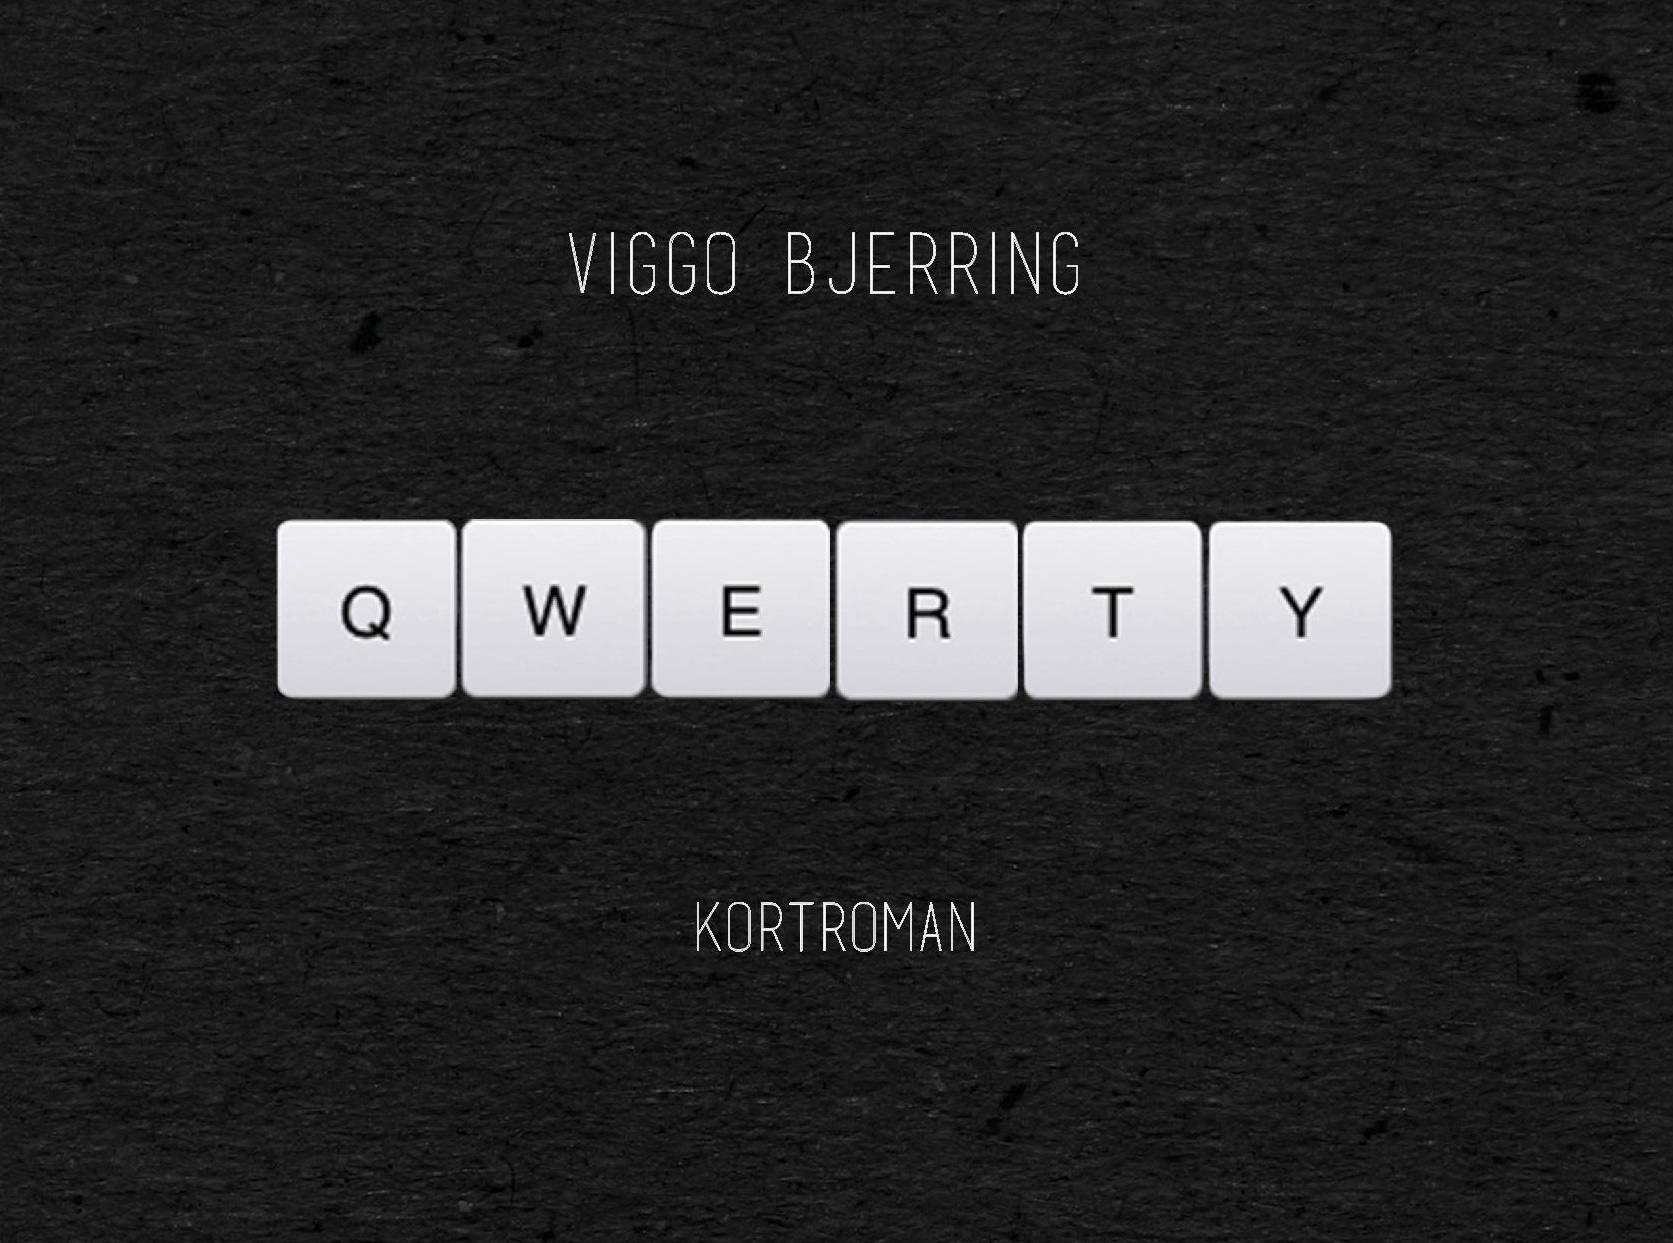 release for qwerty, Viggo Bjerring, qwerty